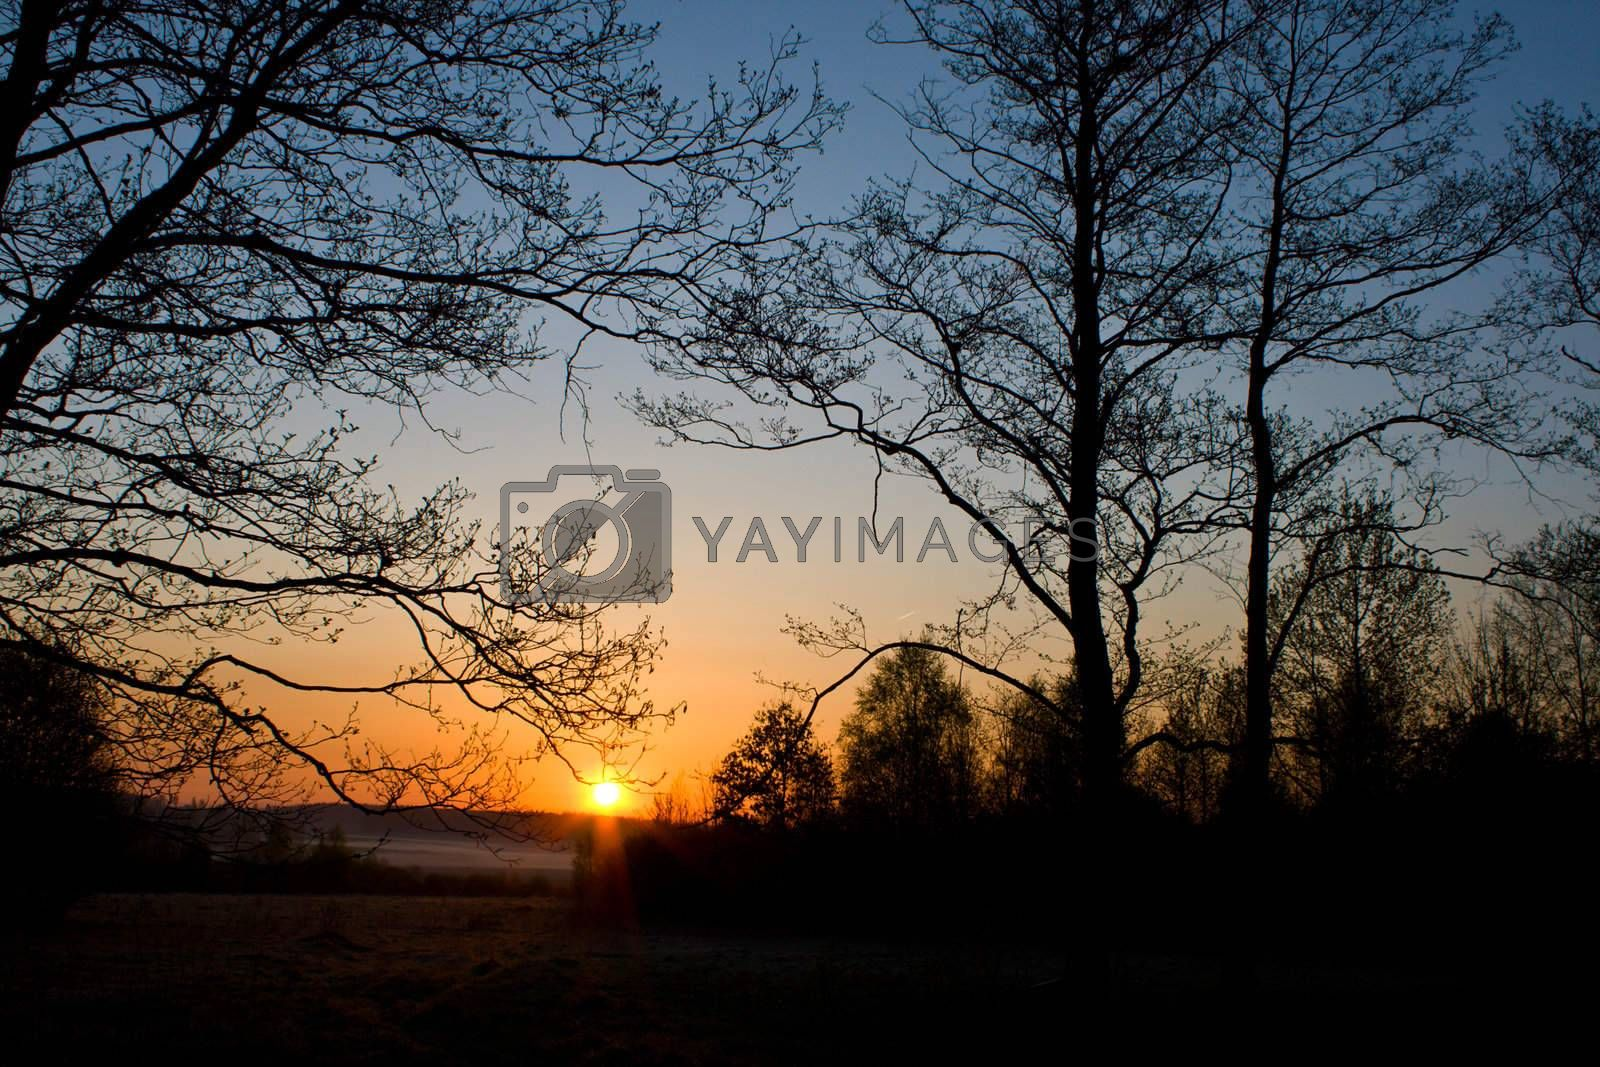 Royalty free image of trees silhouette at dawn by Alekcey